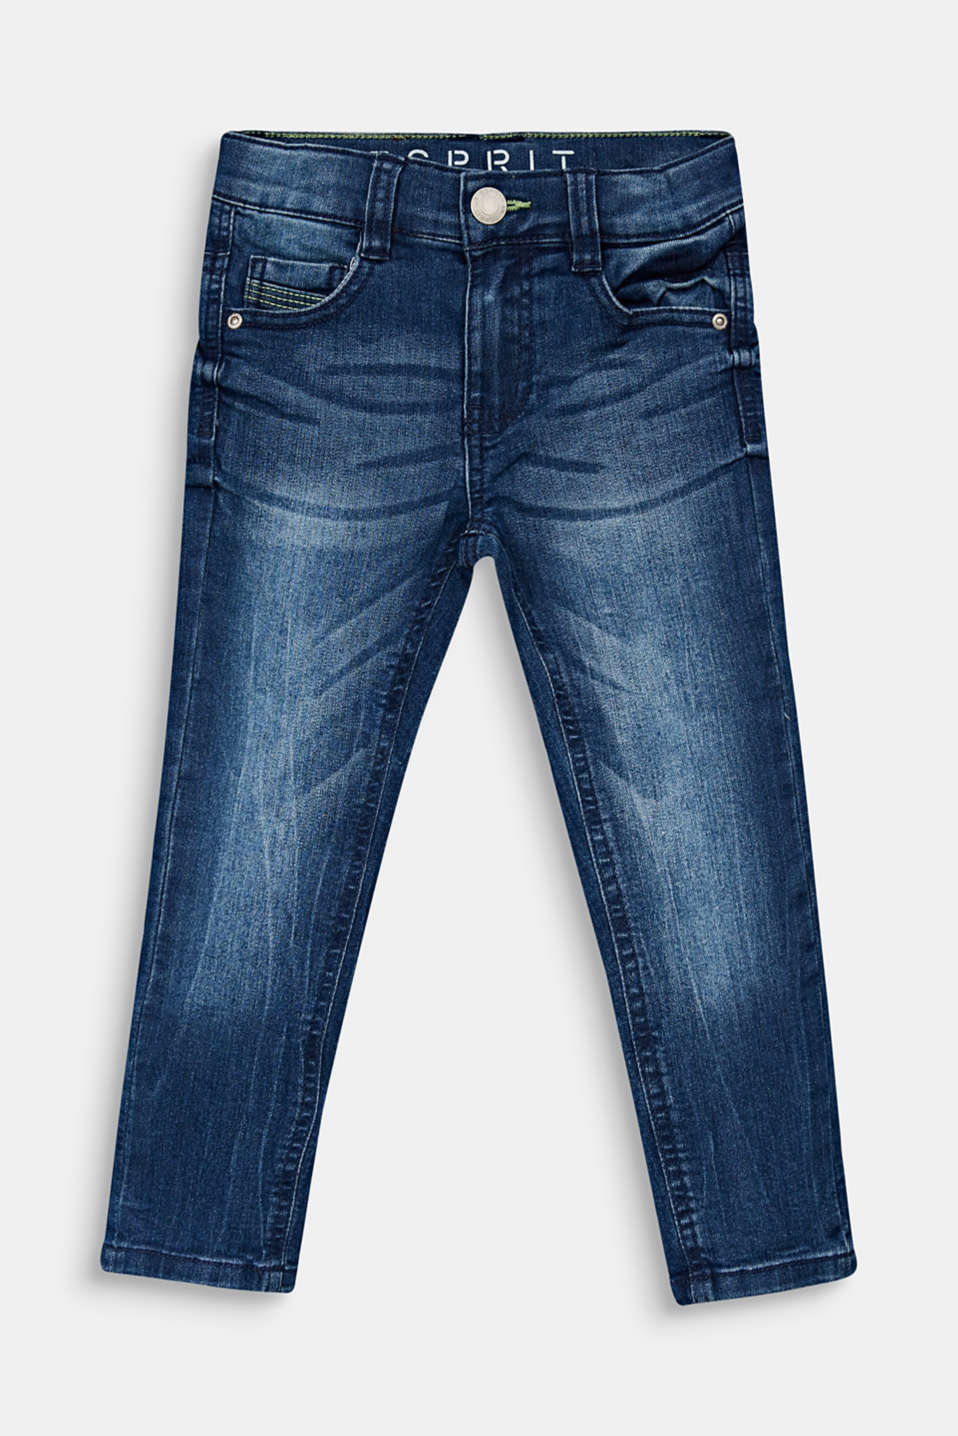 Esprit - Jeans in a garment-washed look with an adjustable waistband